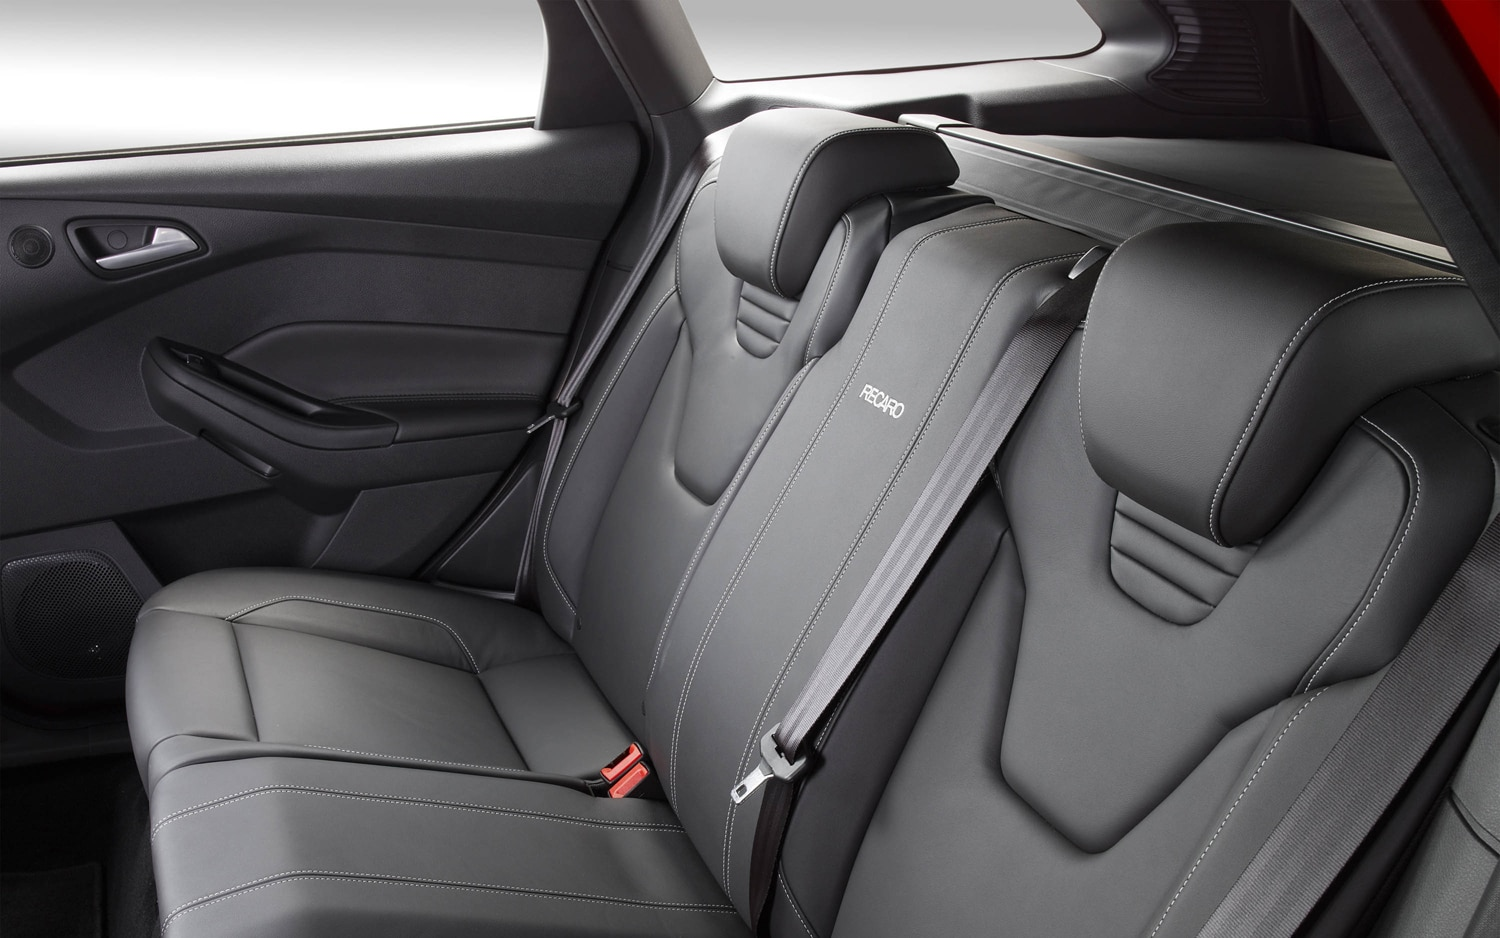 hight resolution of 2013 ford focus euro rear headrests